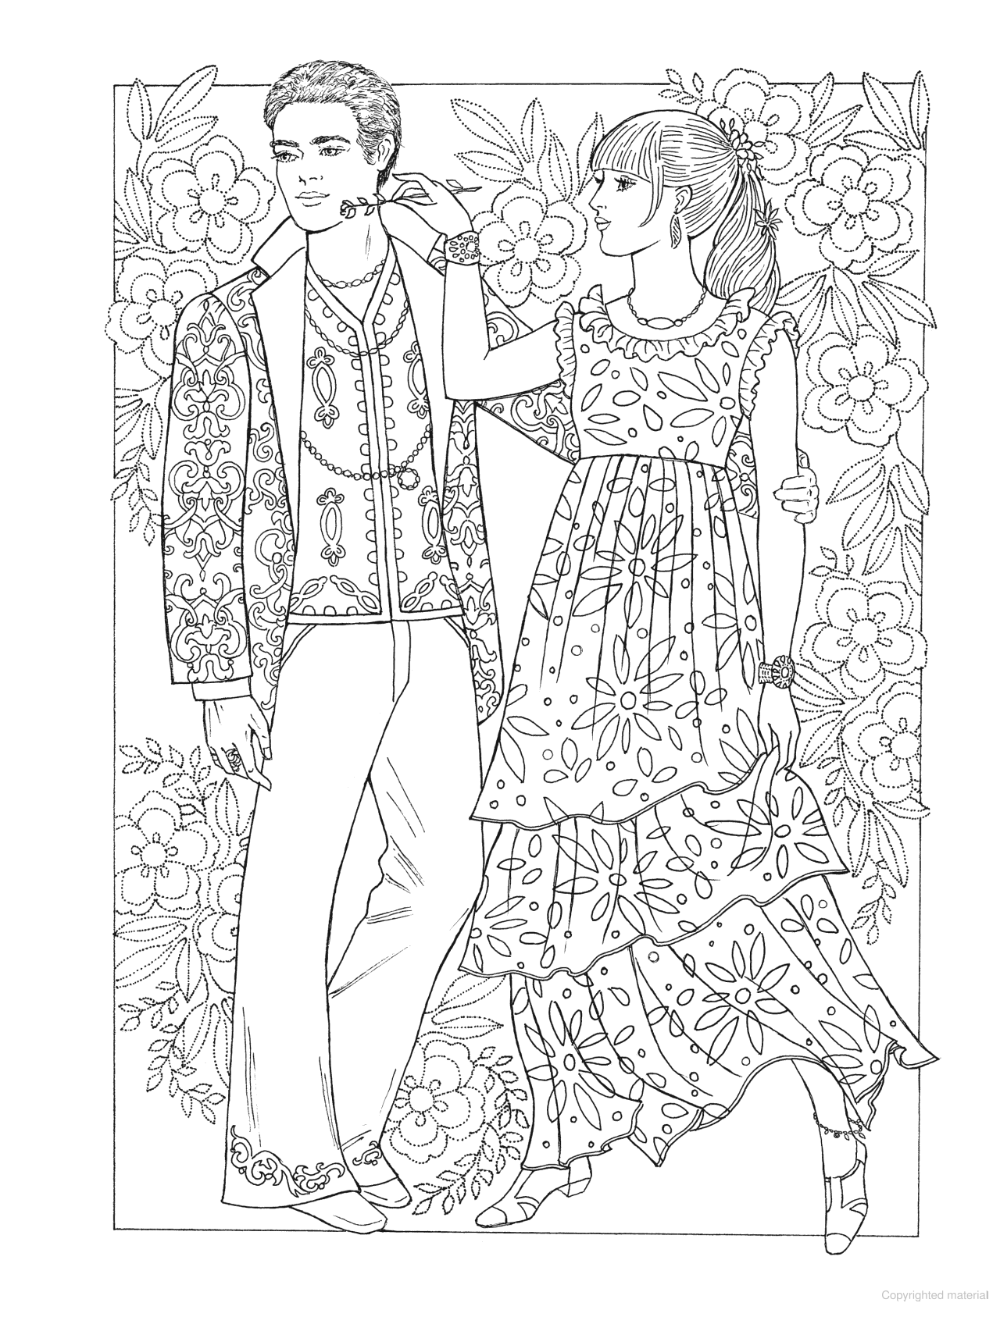 Creative Haven Fabulous Fashions Of The 1960s Coloring Book Coloring Books Coloring Pages Free Coloring Pages